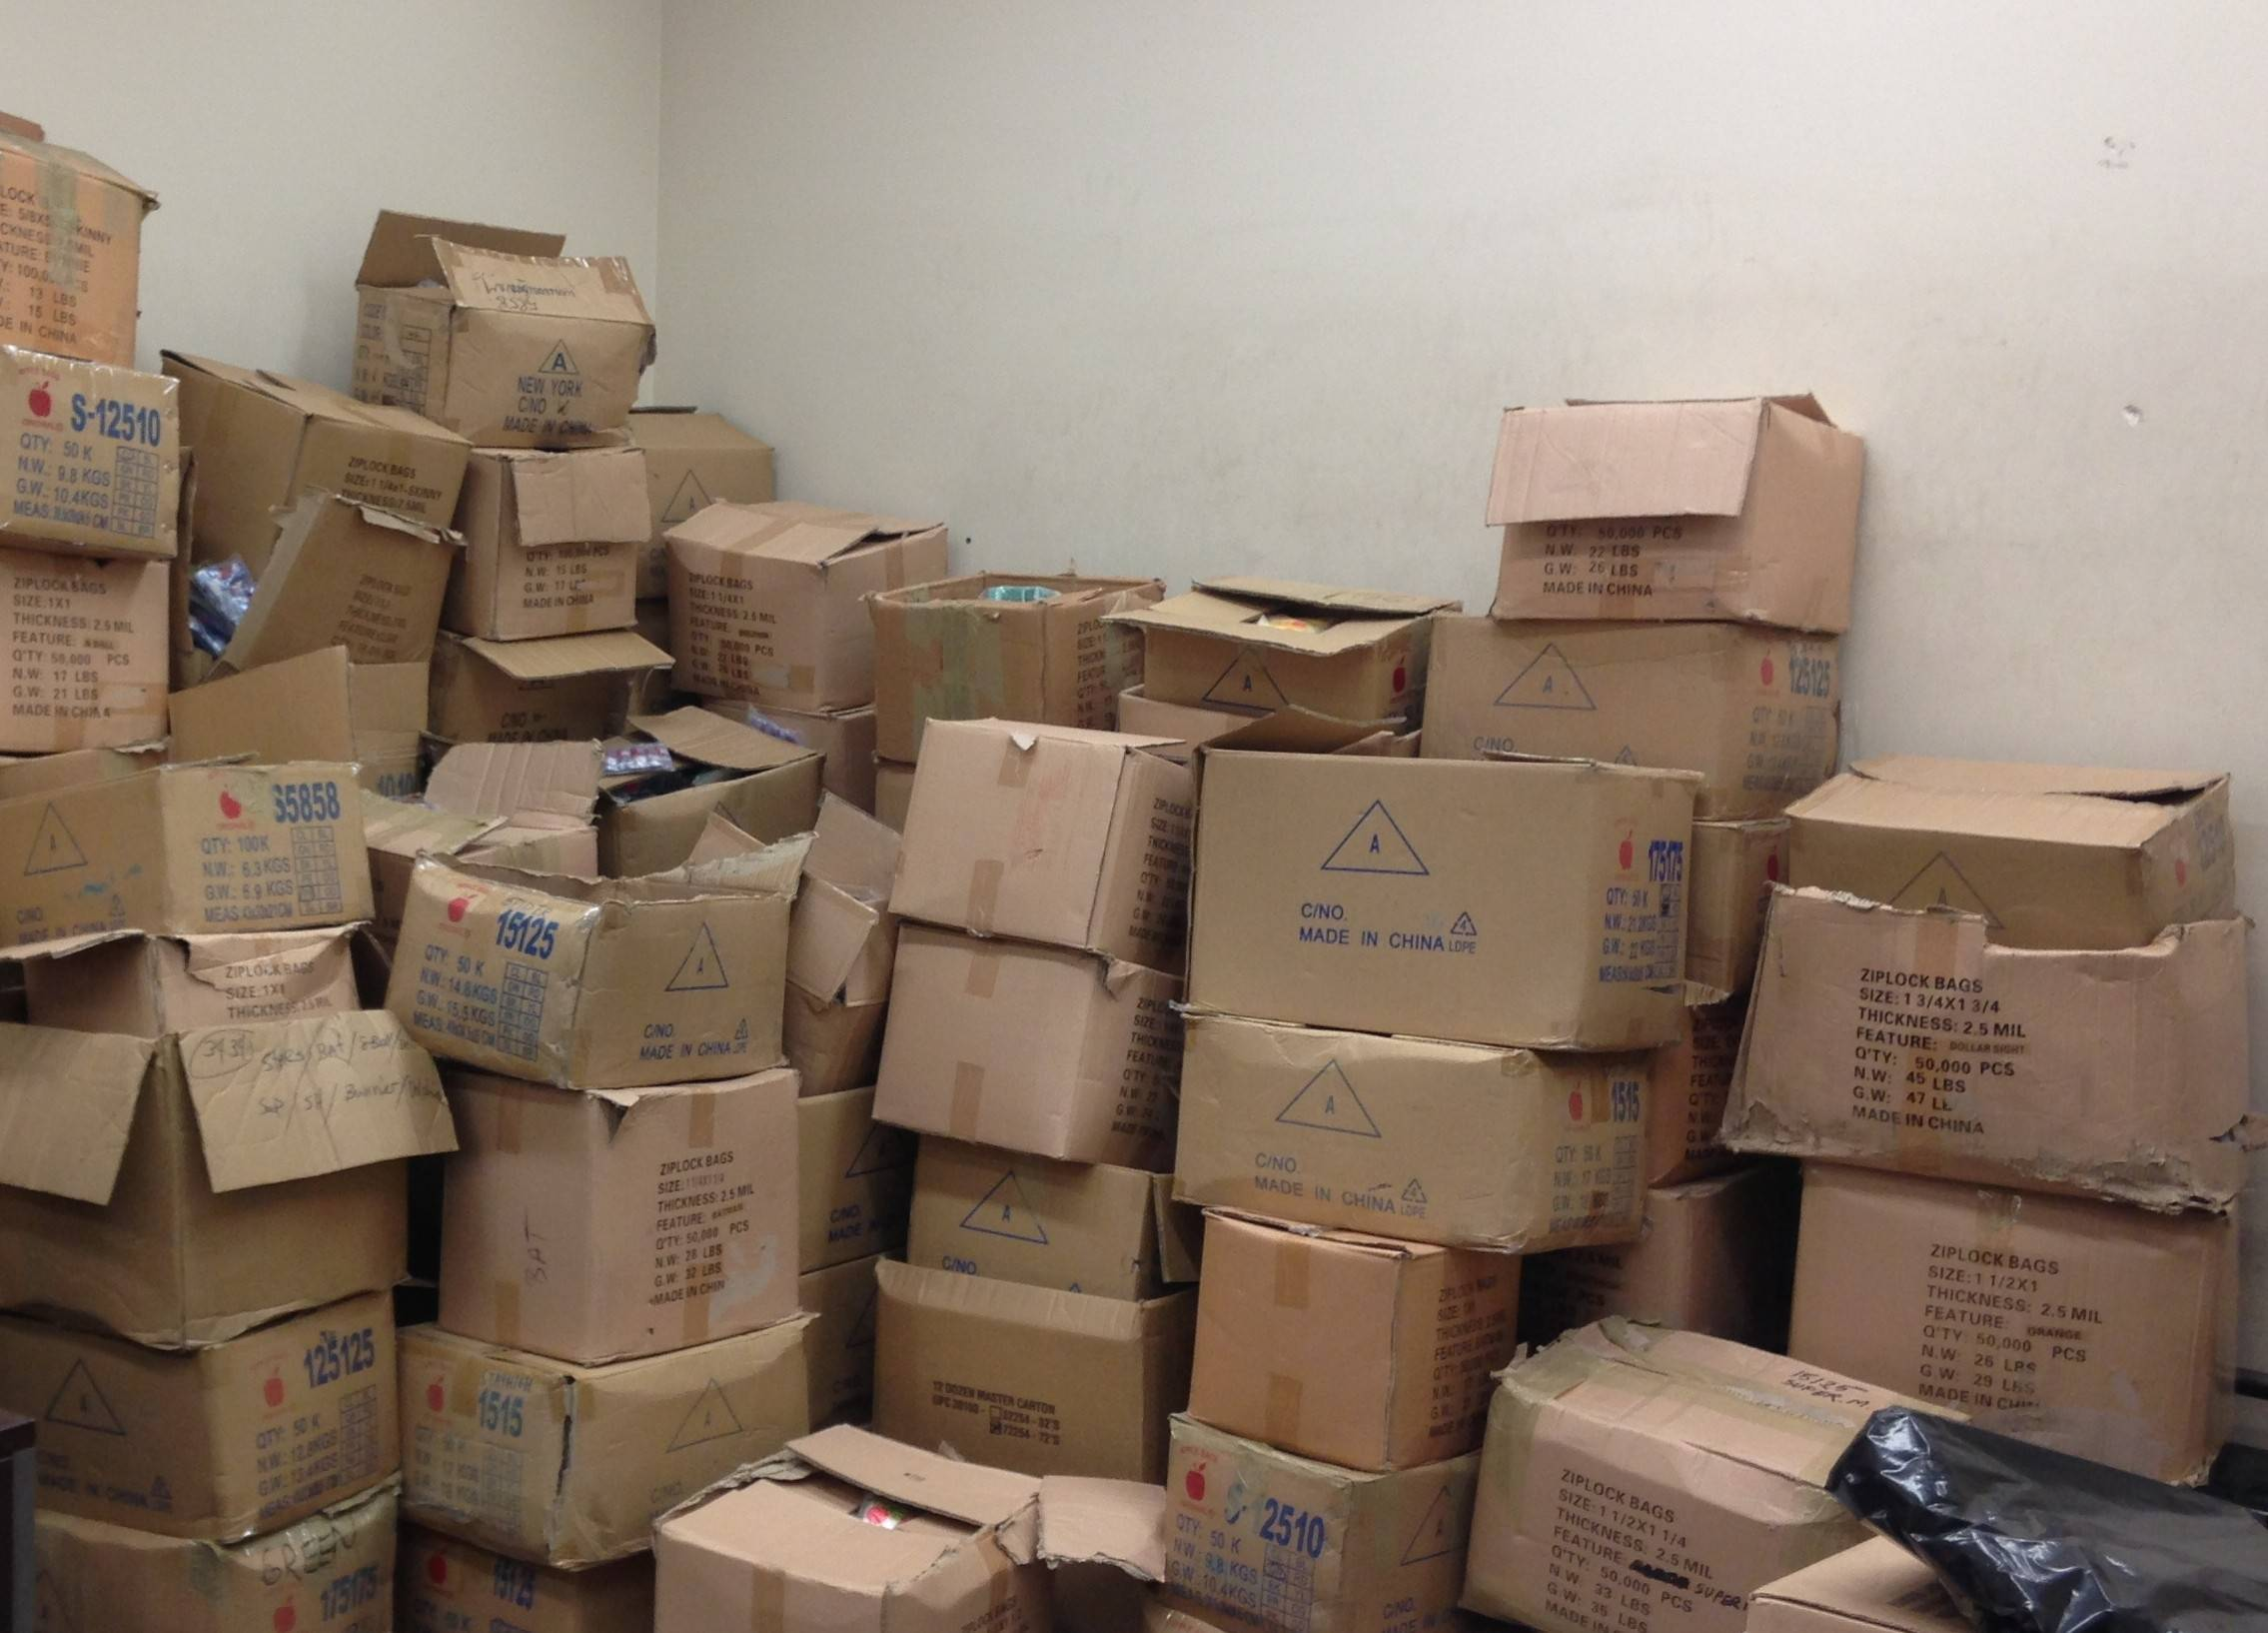 Police recovered boxes, scales and other items in a retail store on the city's West Side.